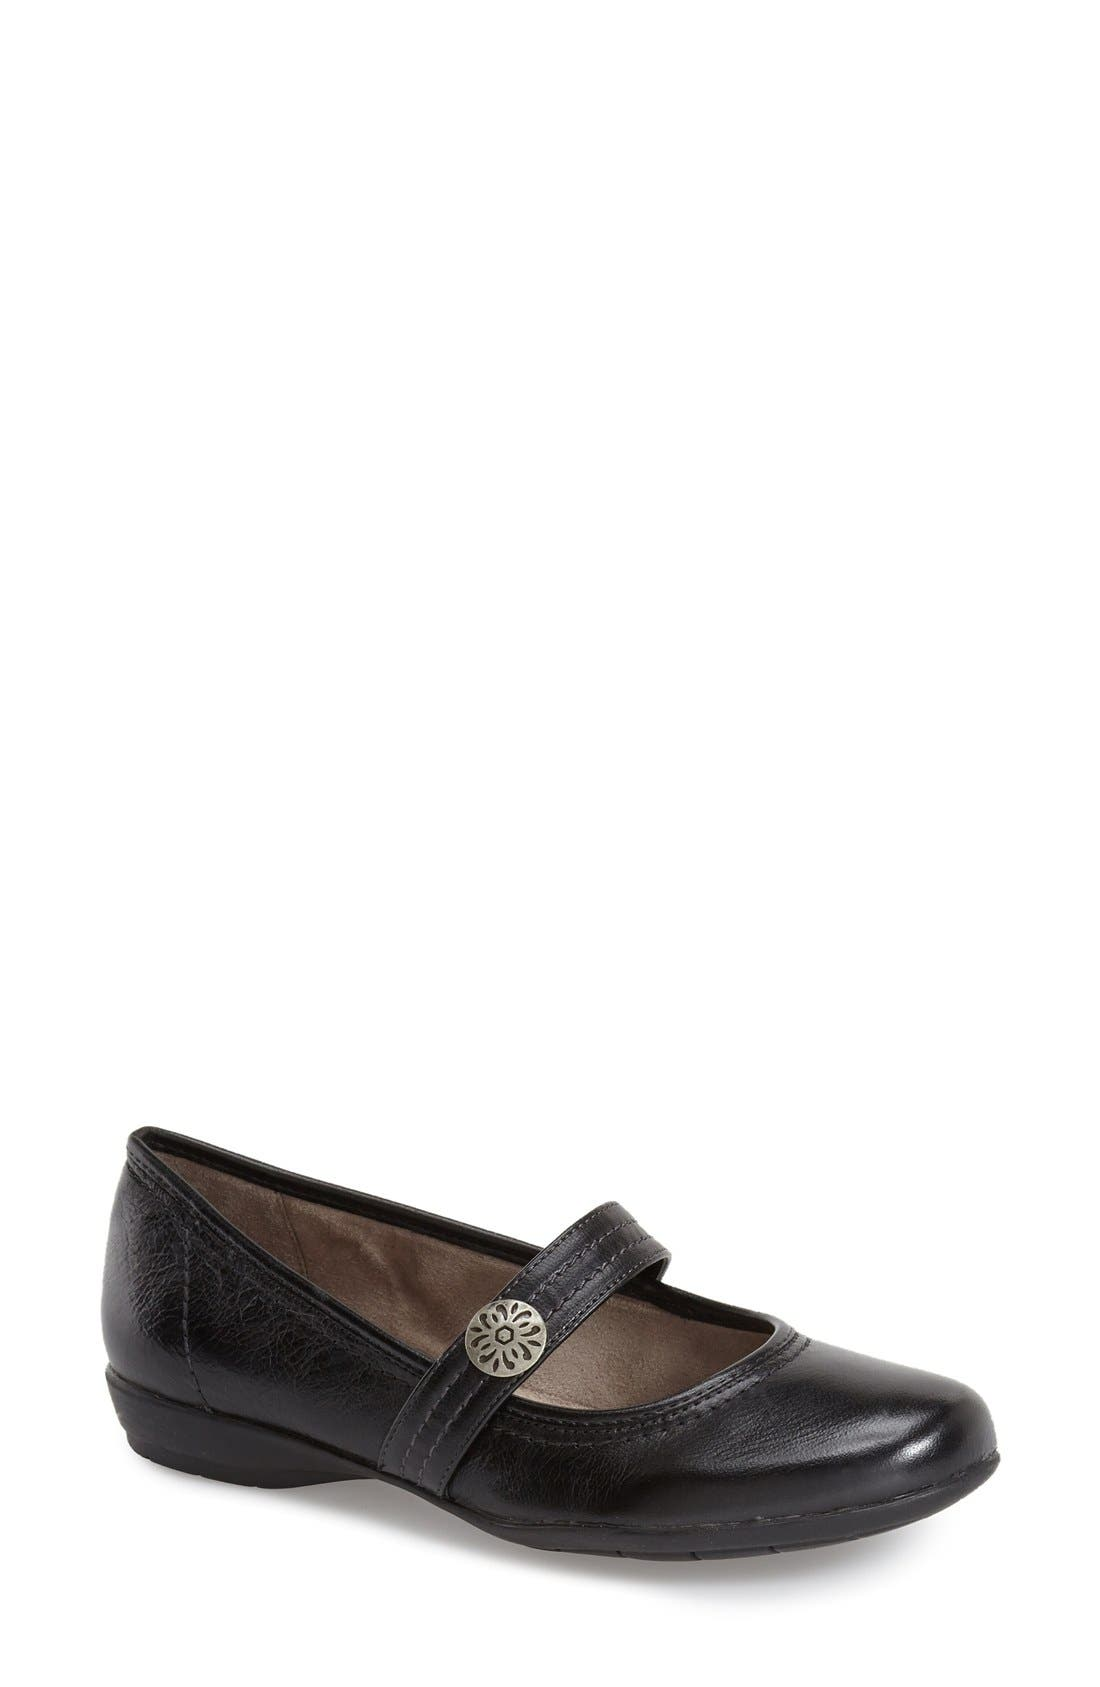 'Garrison' Mary Jane Flat, Main, color, 001